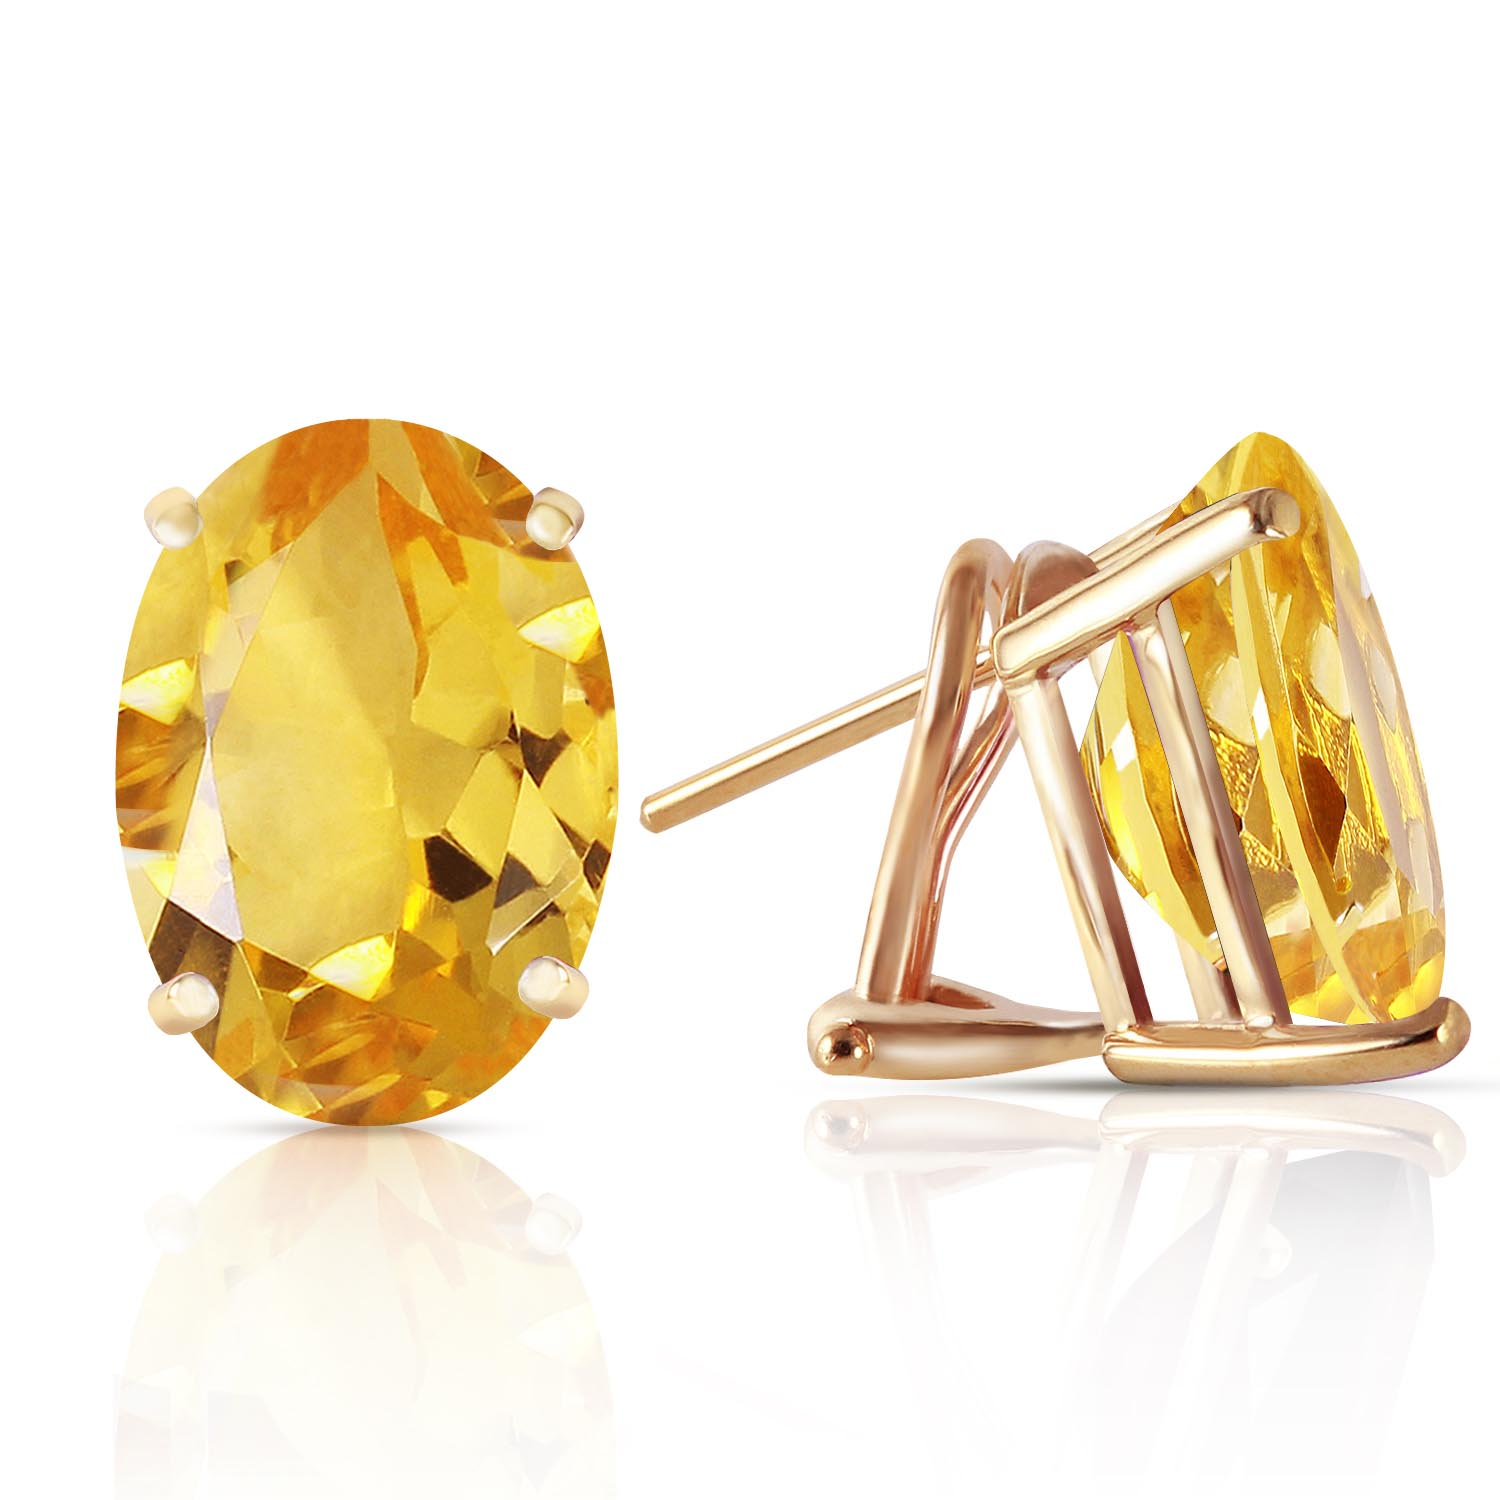 Citrine Stud Earrings 12.0ctw in 9ct Gold